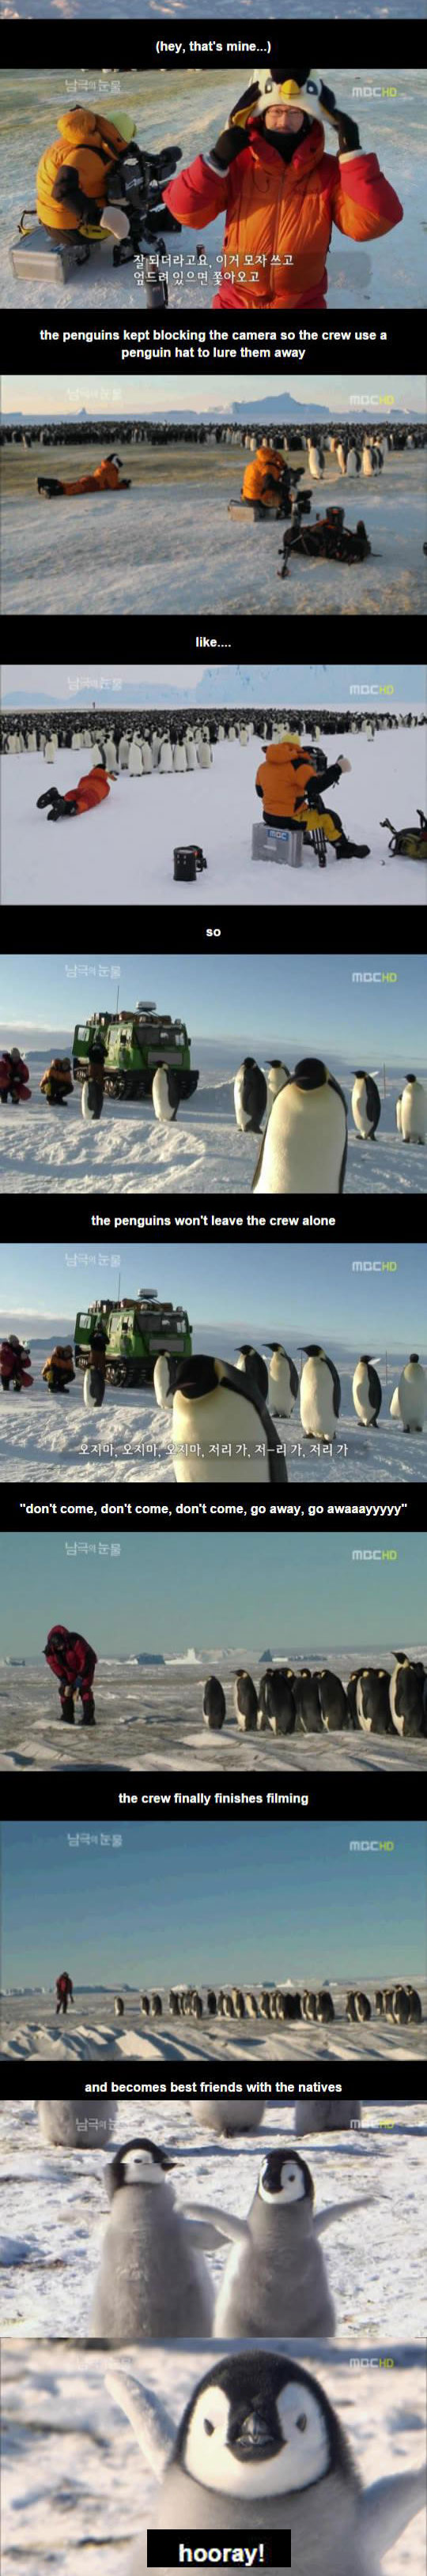 cute-penguin-film-crew-friends